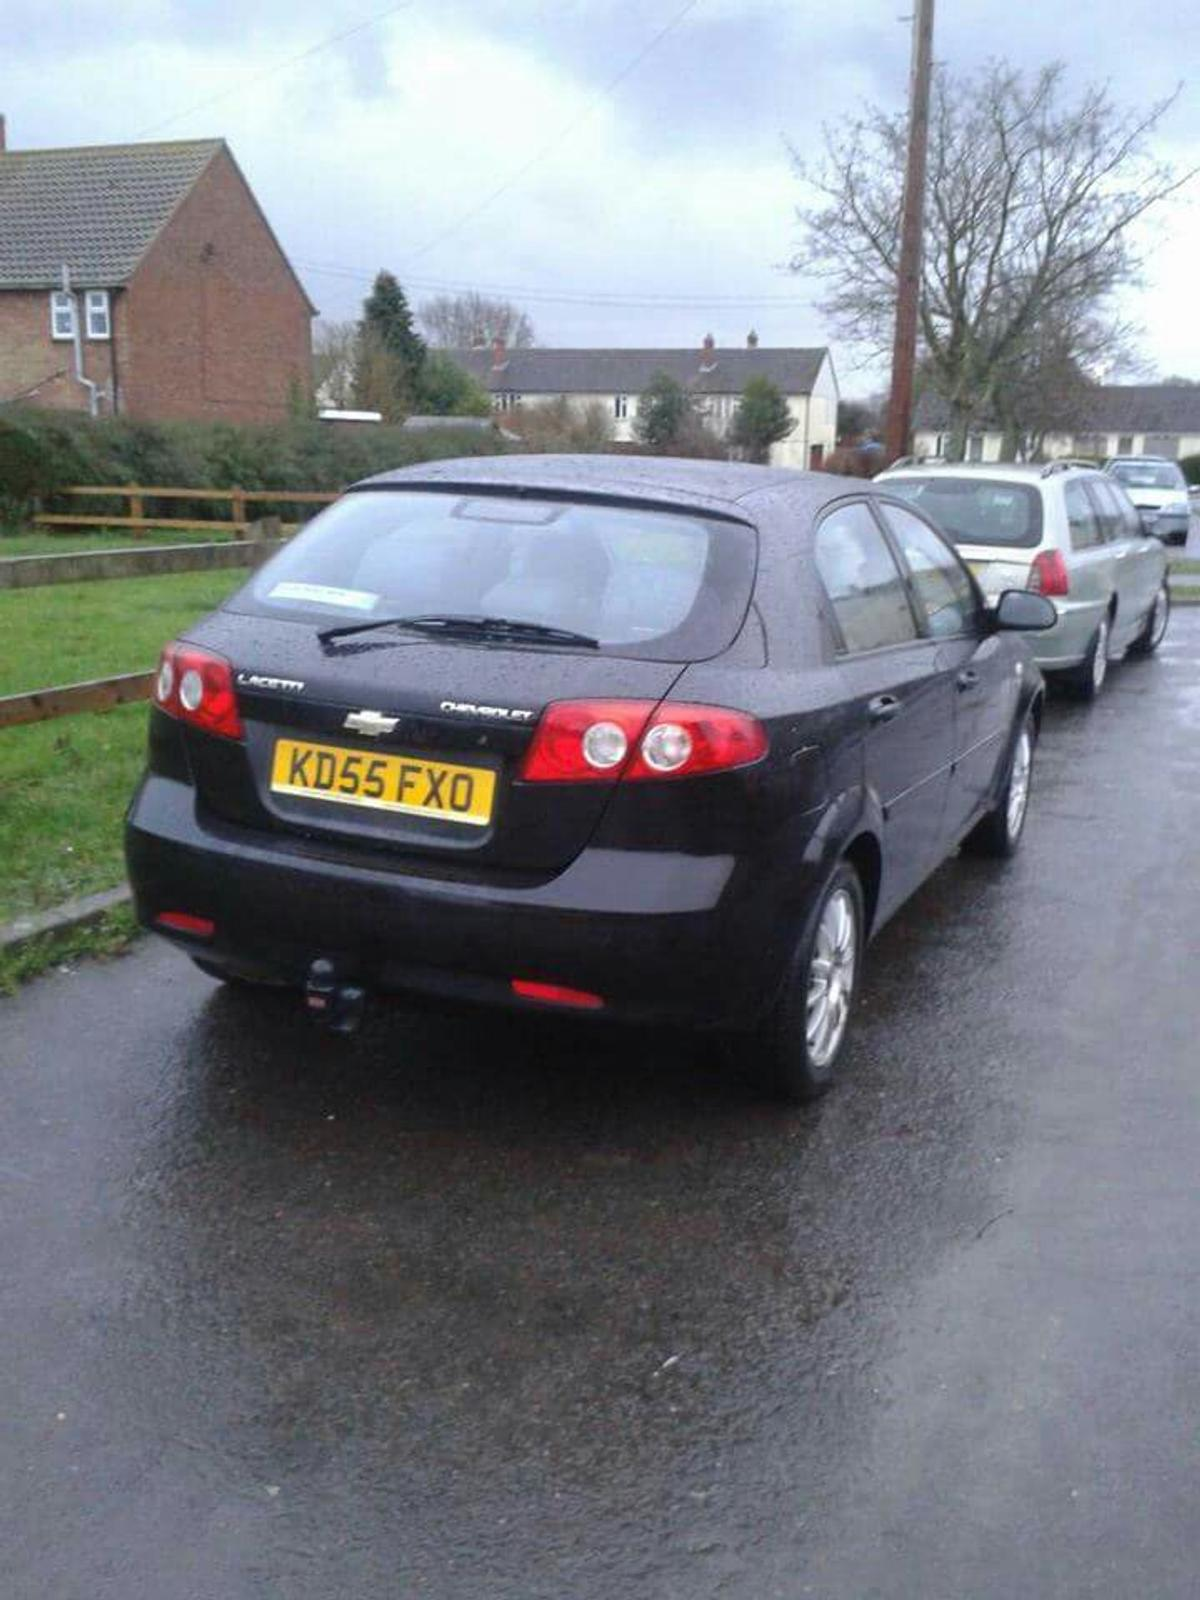 Chevrolet Lacetti 1 6 SX 2005 in IP30 Suffolk for £795 00